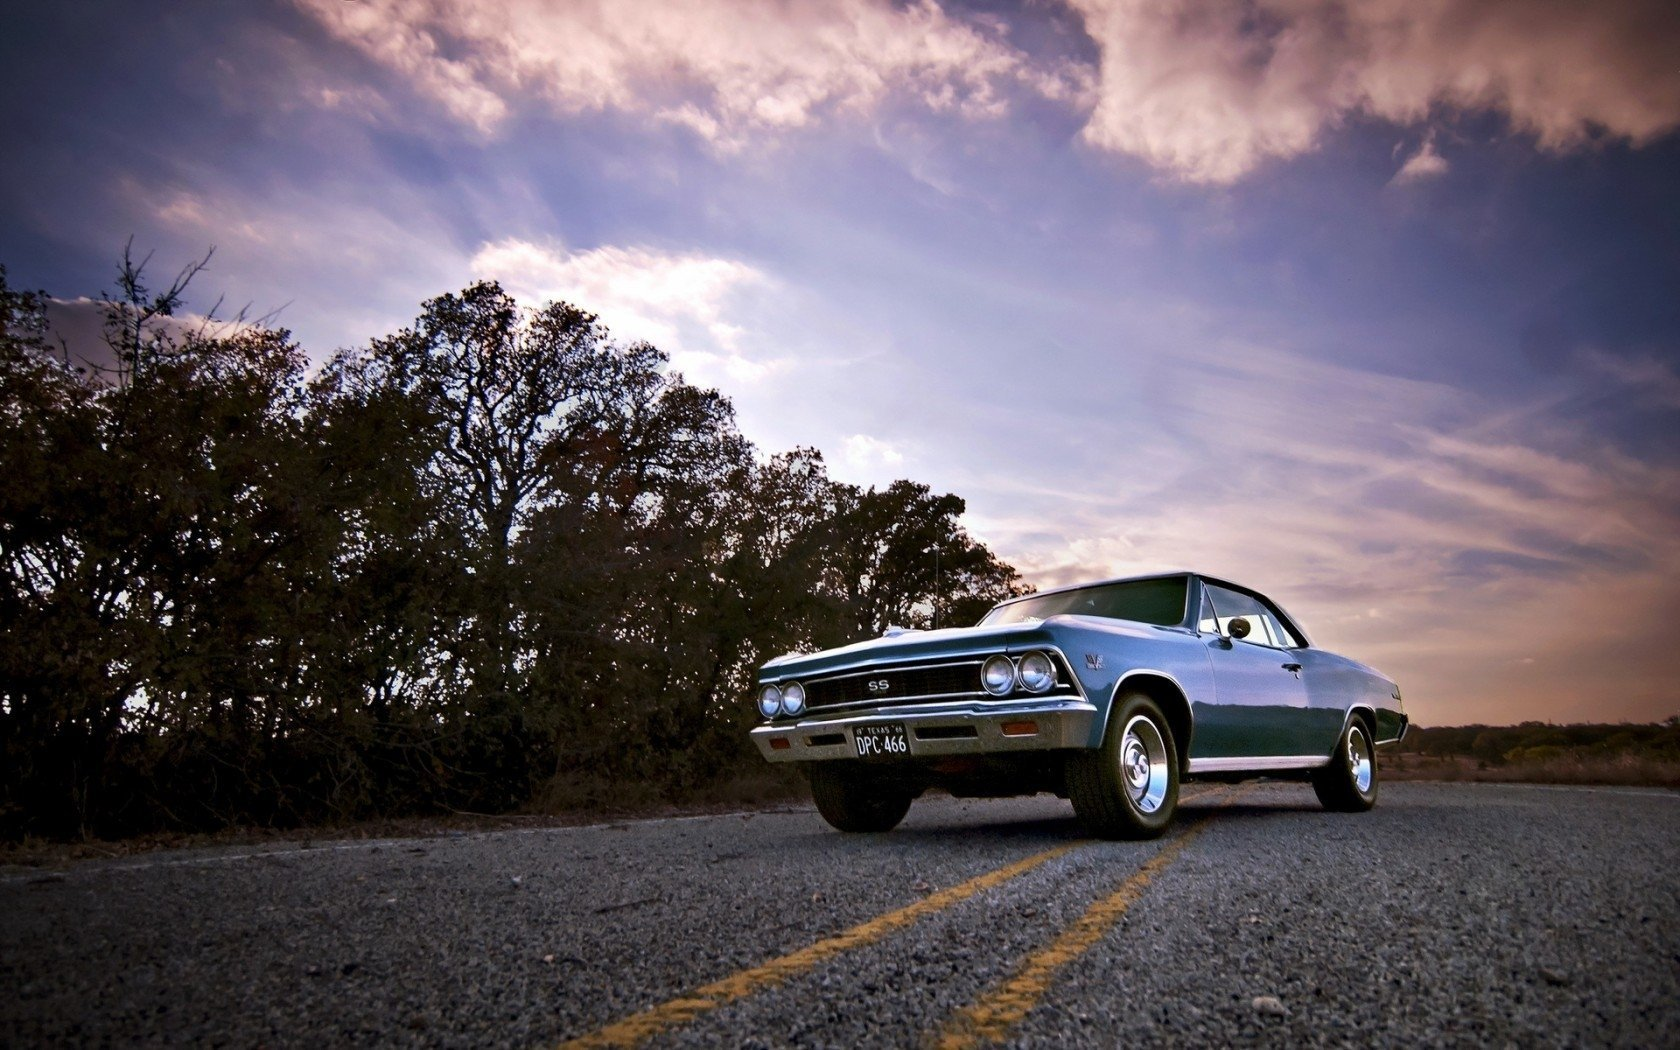 New 1966 Chevrolet Chevelle Ss Wallpaper And Background Image On This Month